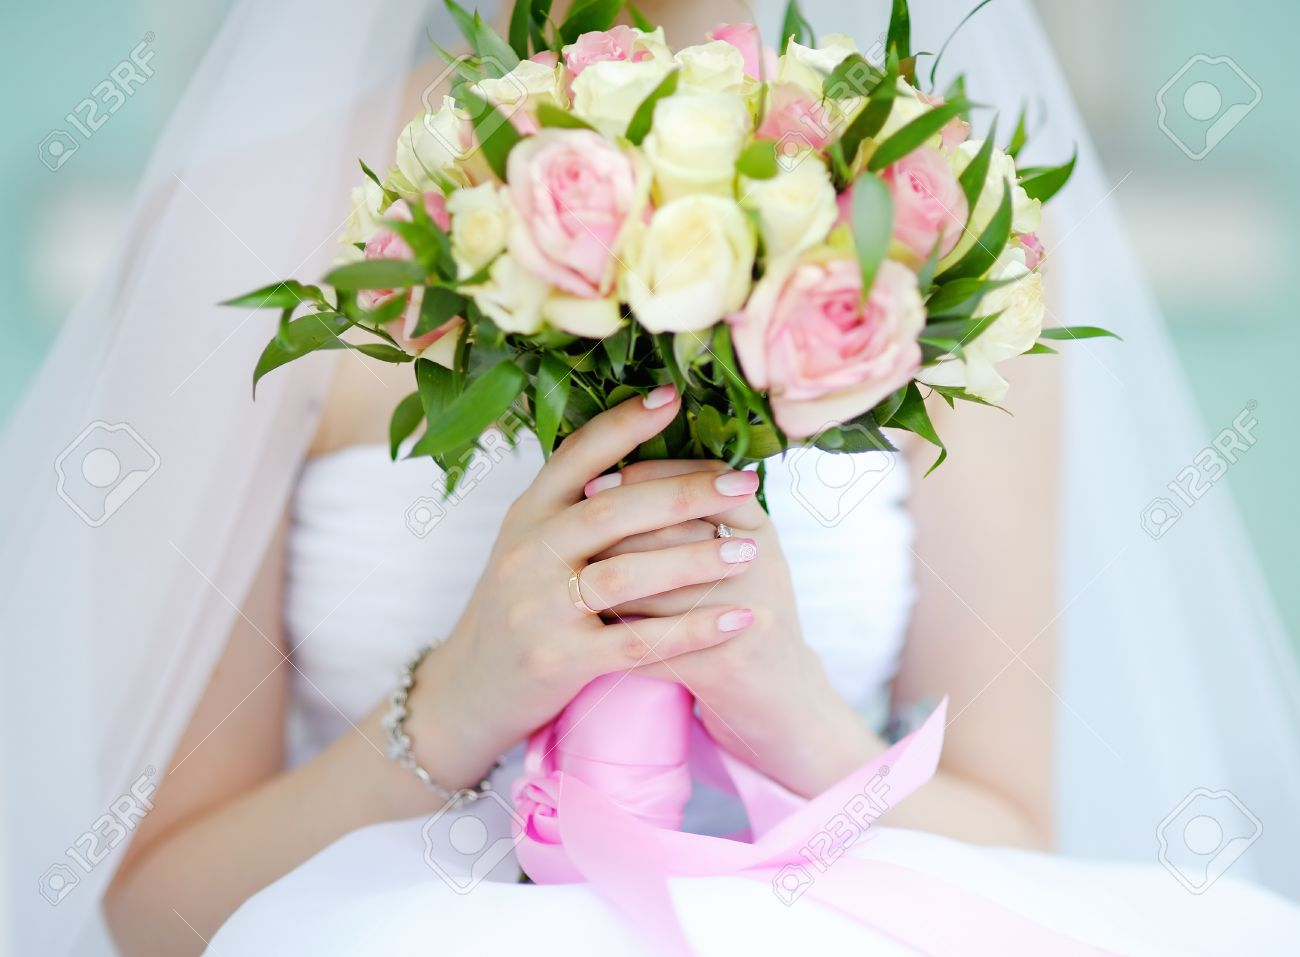 Bride holding wedding flowers roses bouquet, focus in hand and wedding ring - 45137459